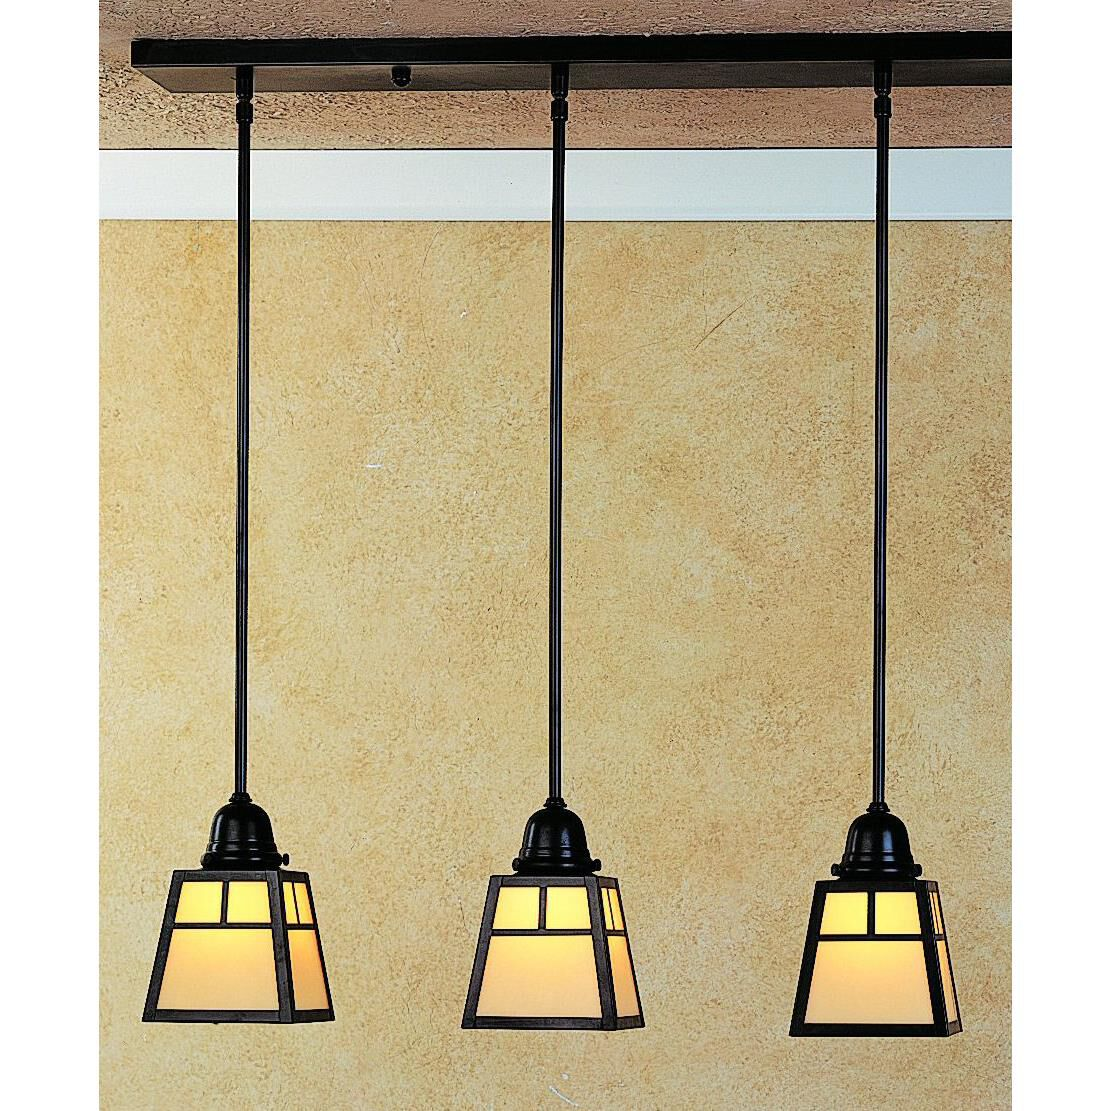 Arroyo_Craftsman_ALine_24_Inch_3_Light_Linear_Suspension_Light_ALine__AICH3TWOAB__CraftsmanMission_Linear_Suspension_Light